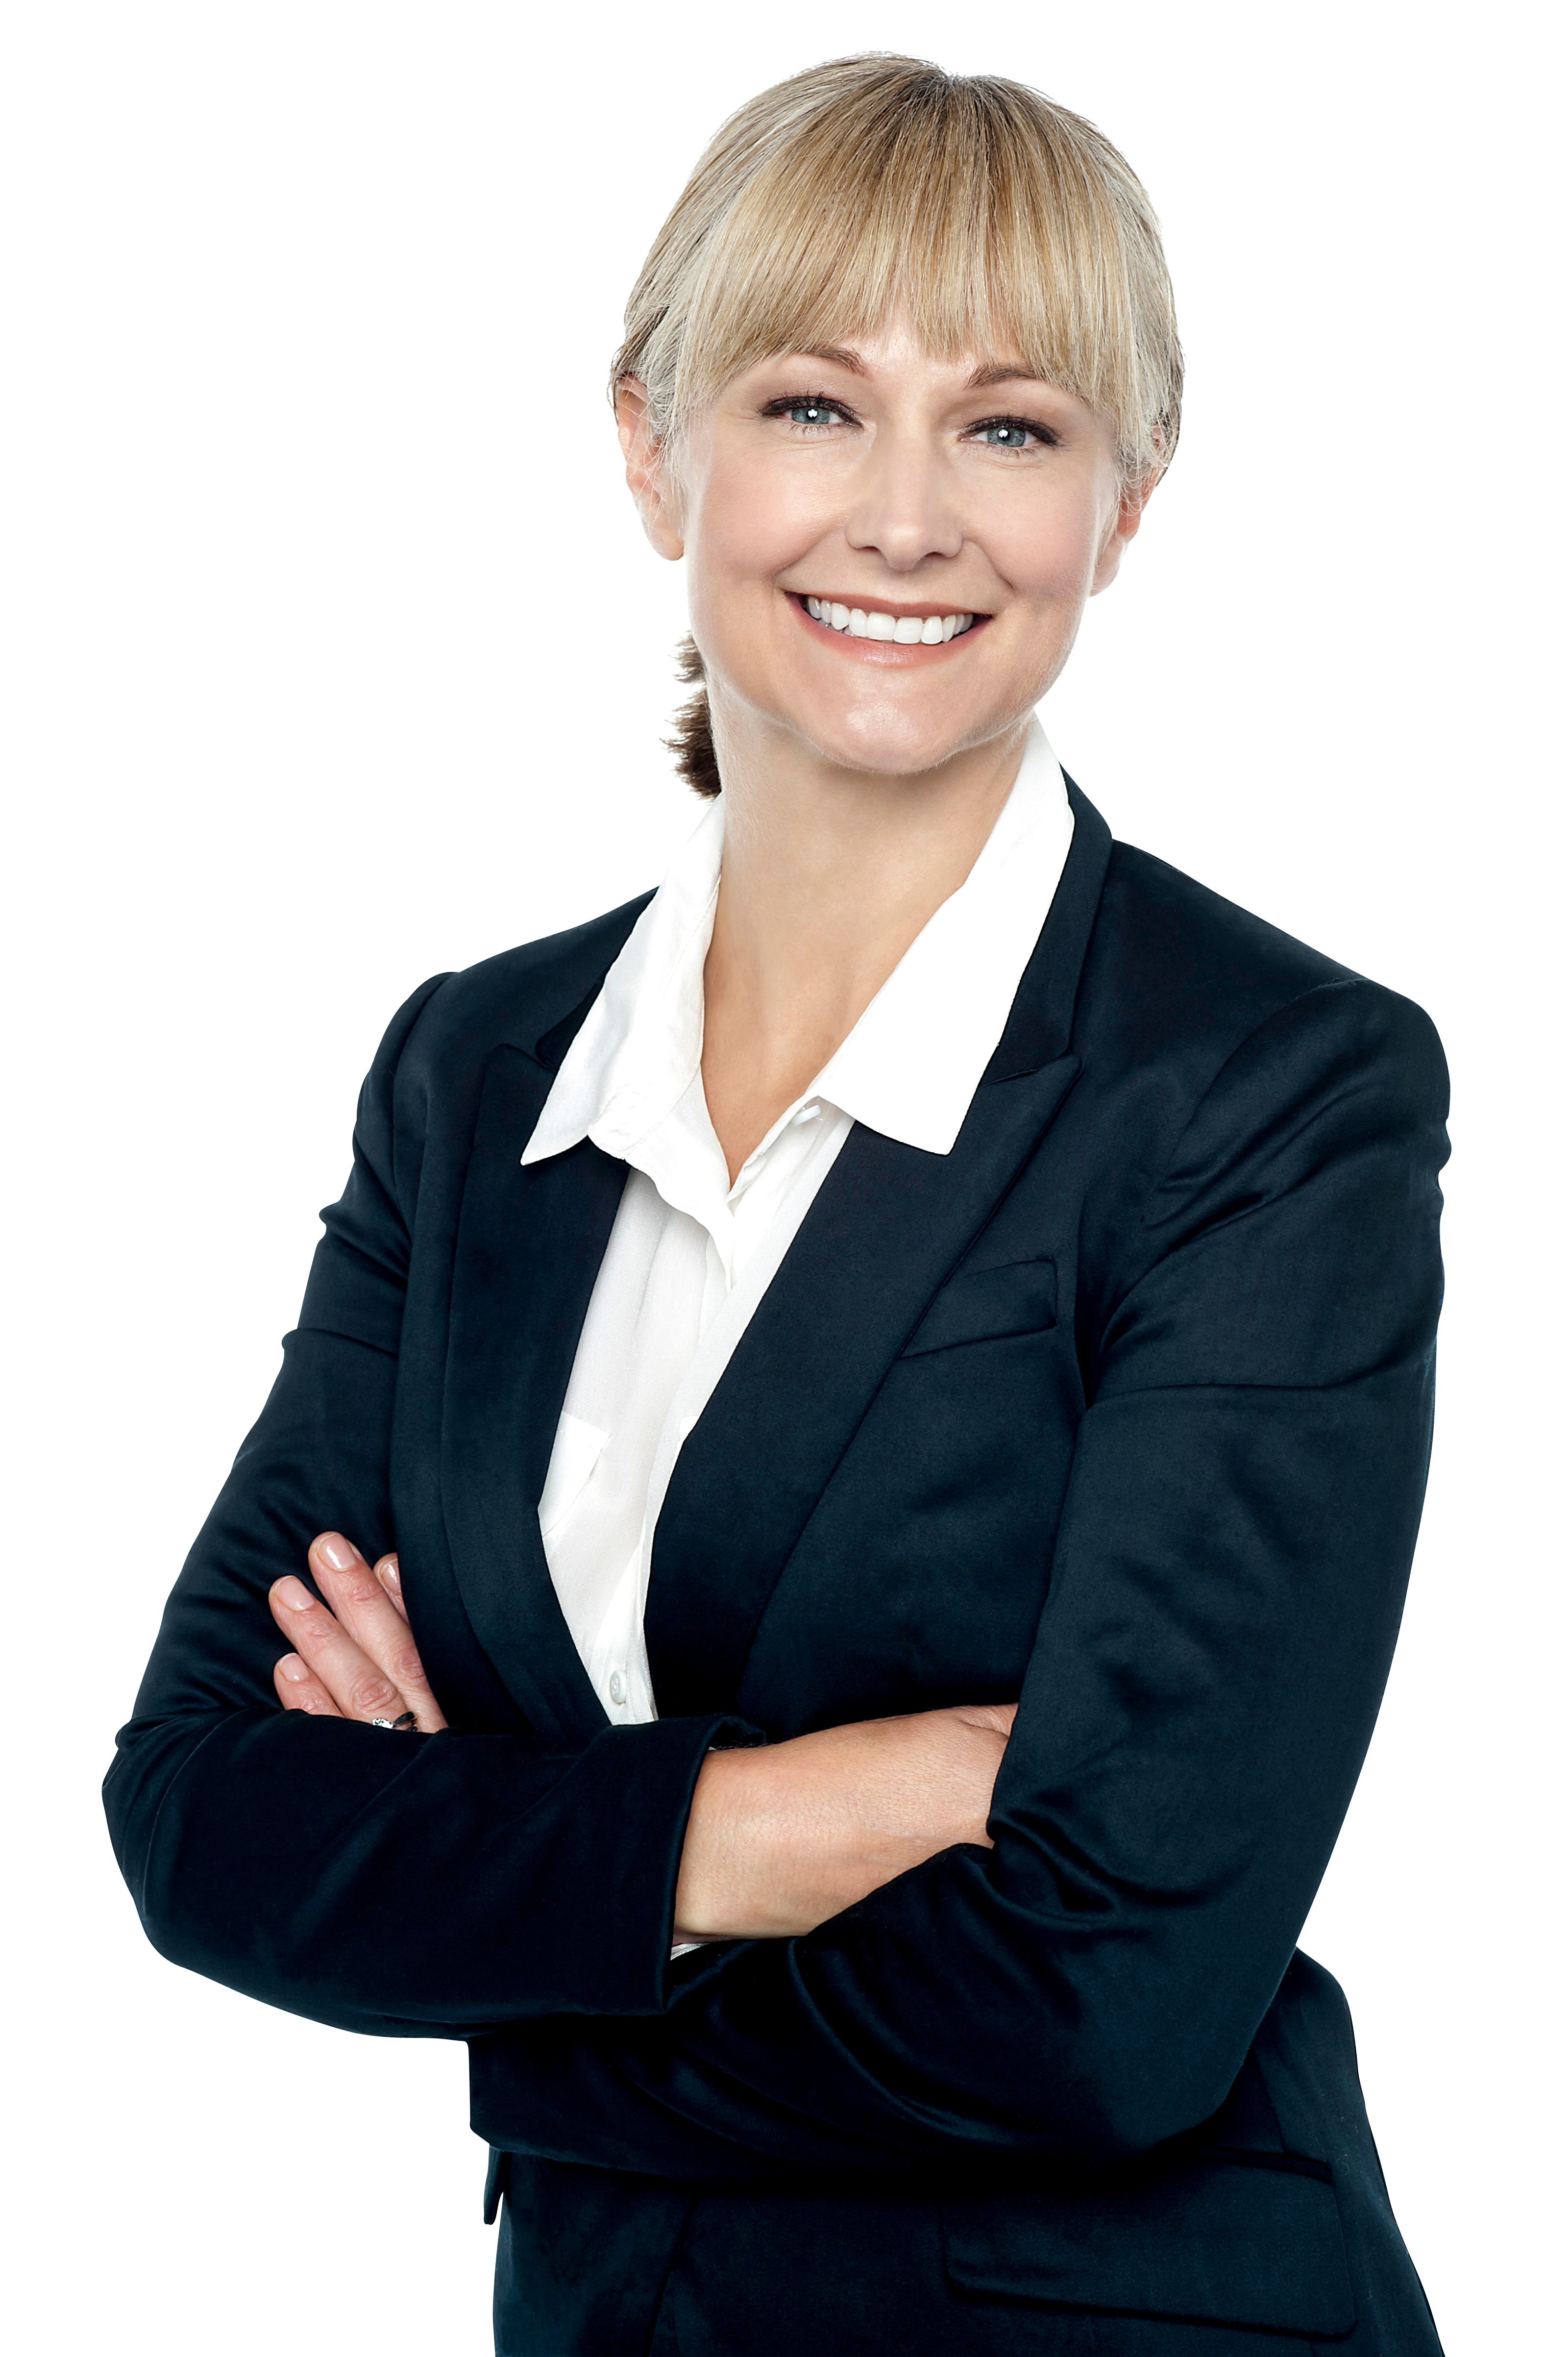 Women in suit image. Free png images for commercial use